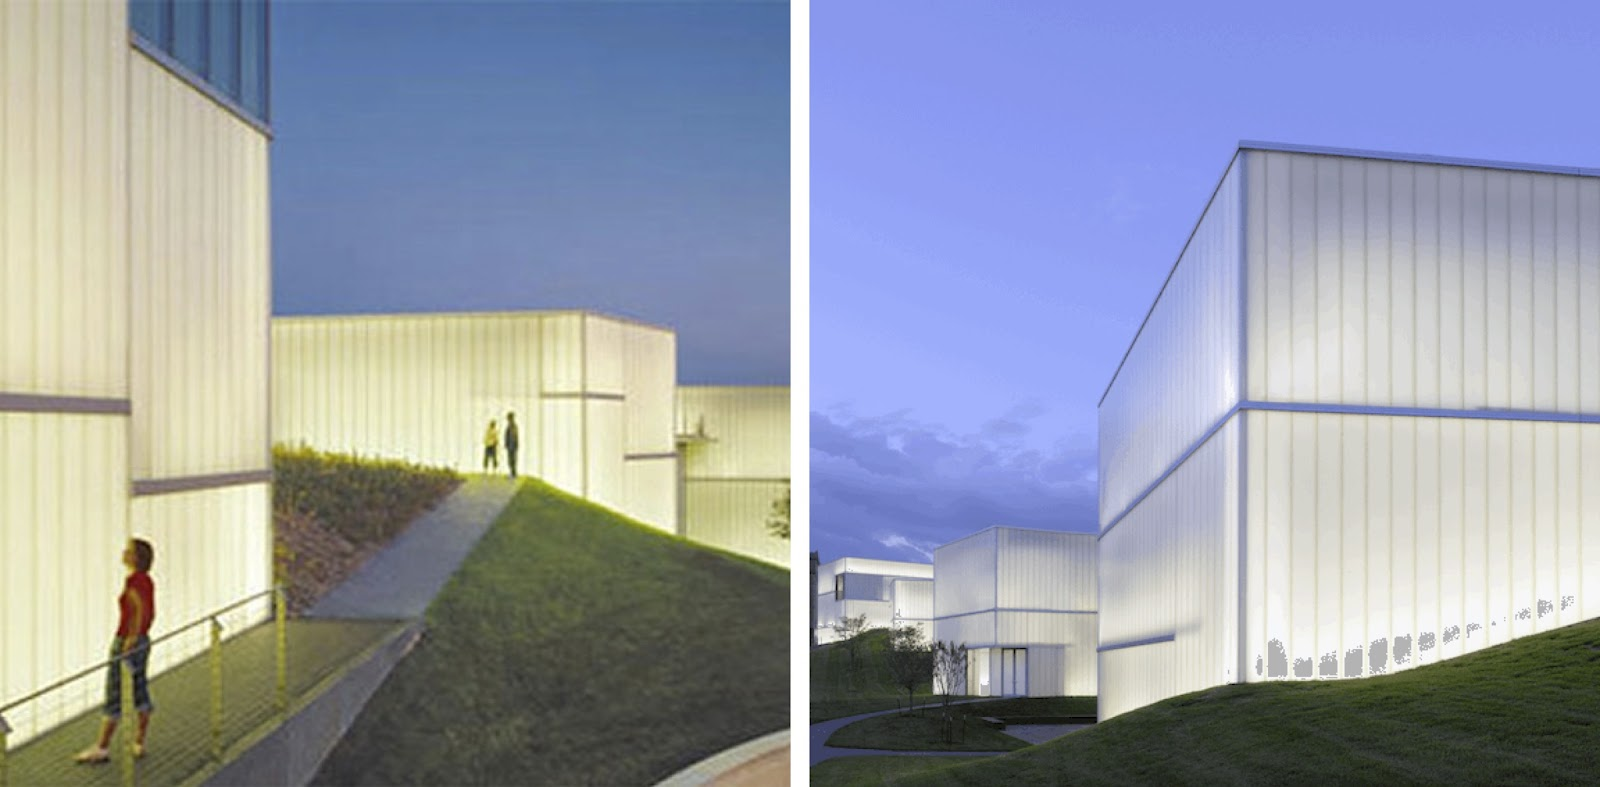 steven holl A global search for a multidisciplinary design team to enhance and enliven the university's campus.